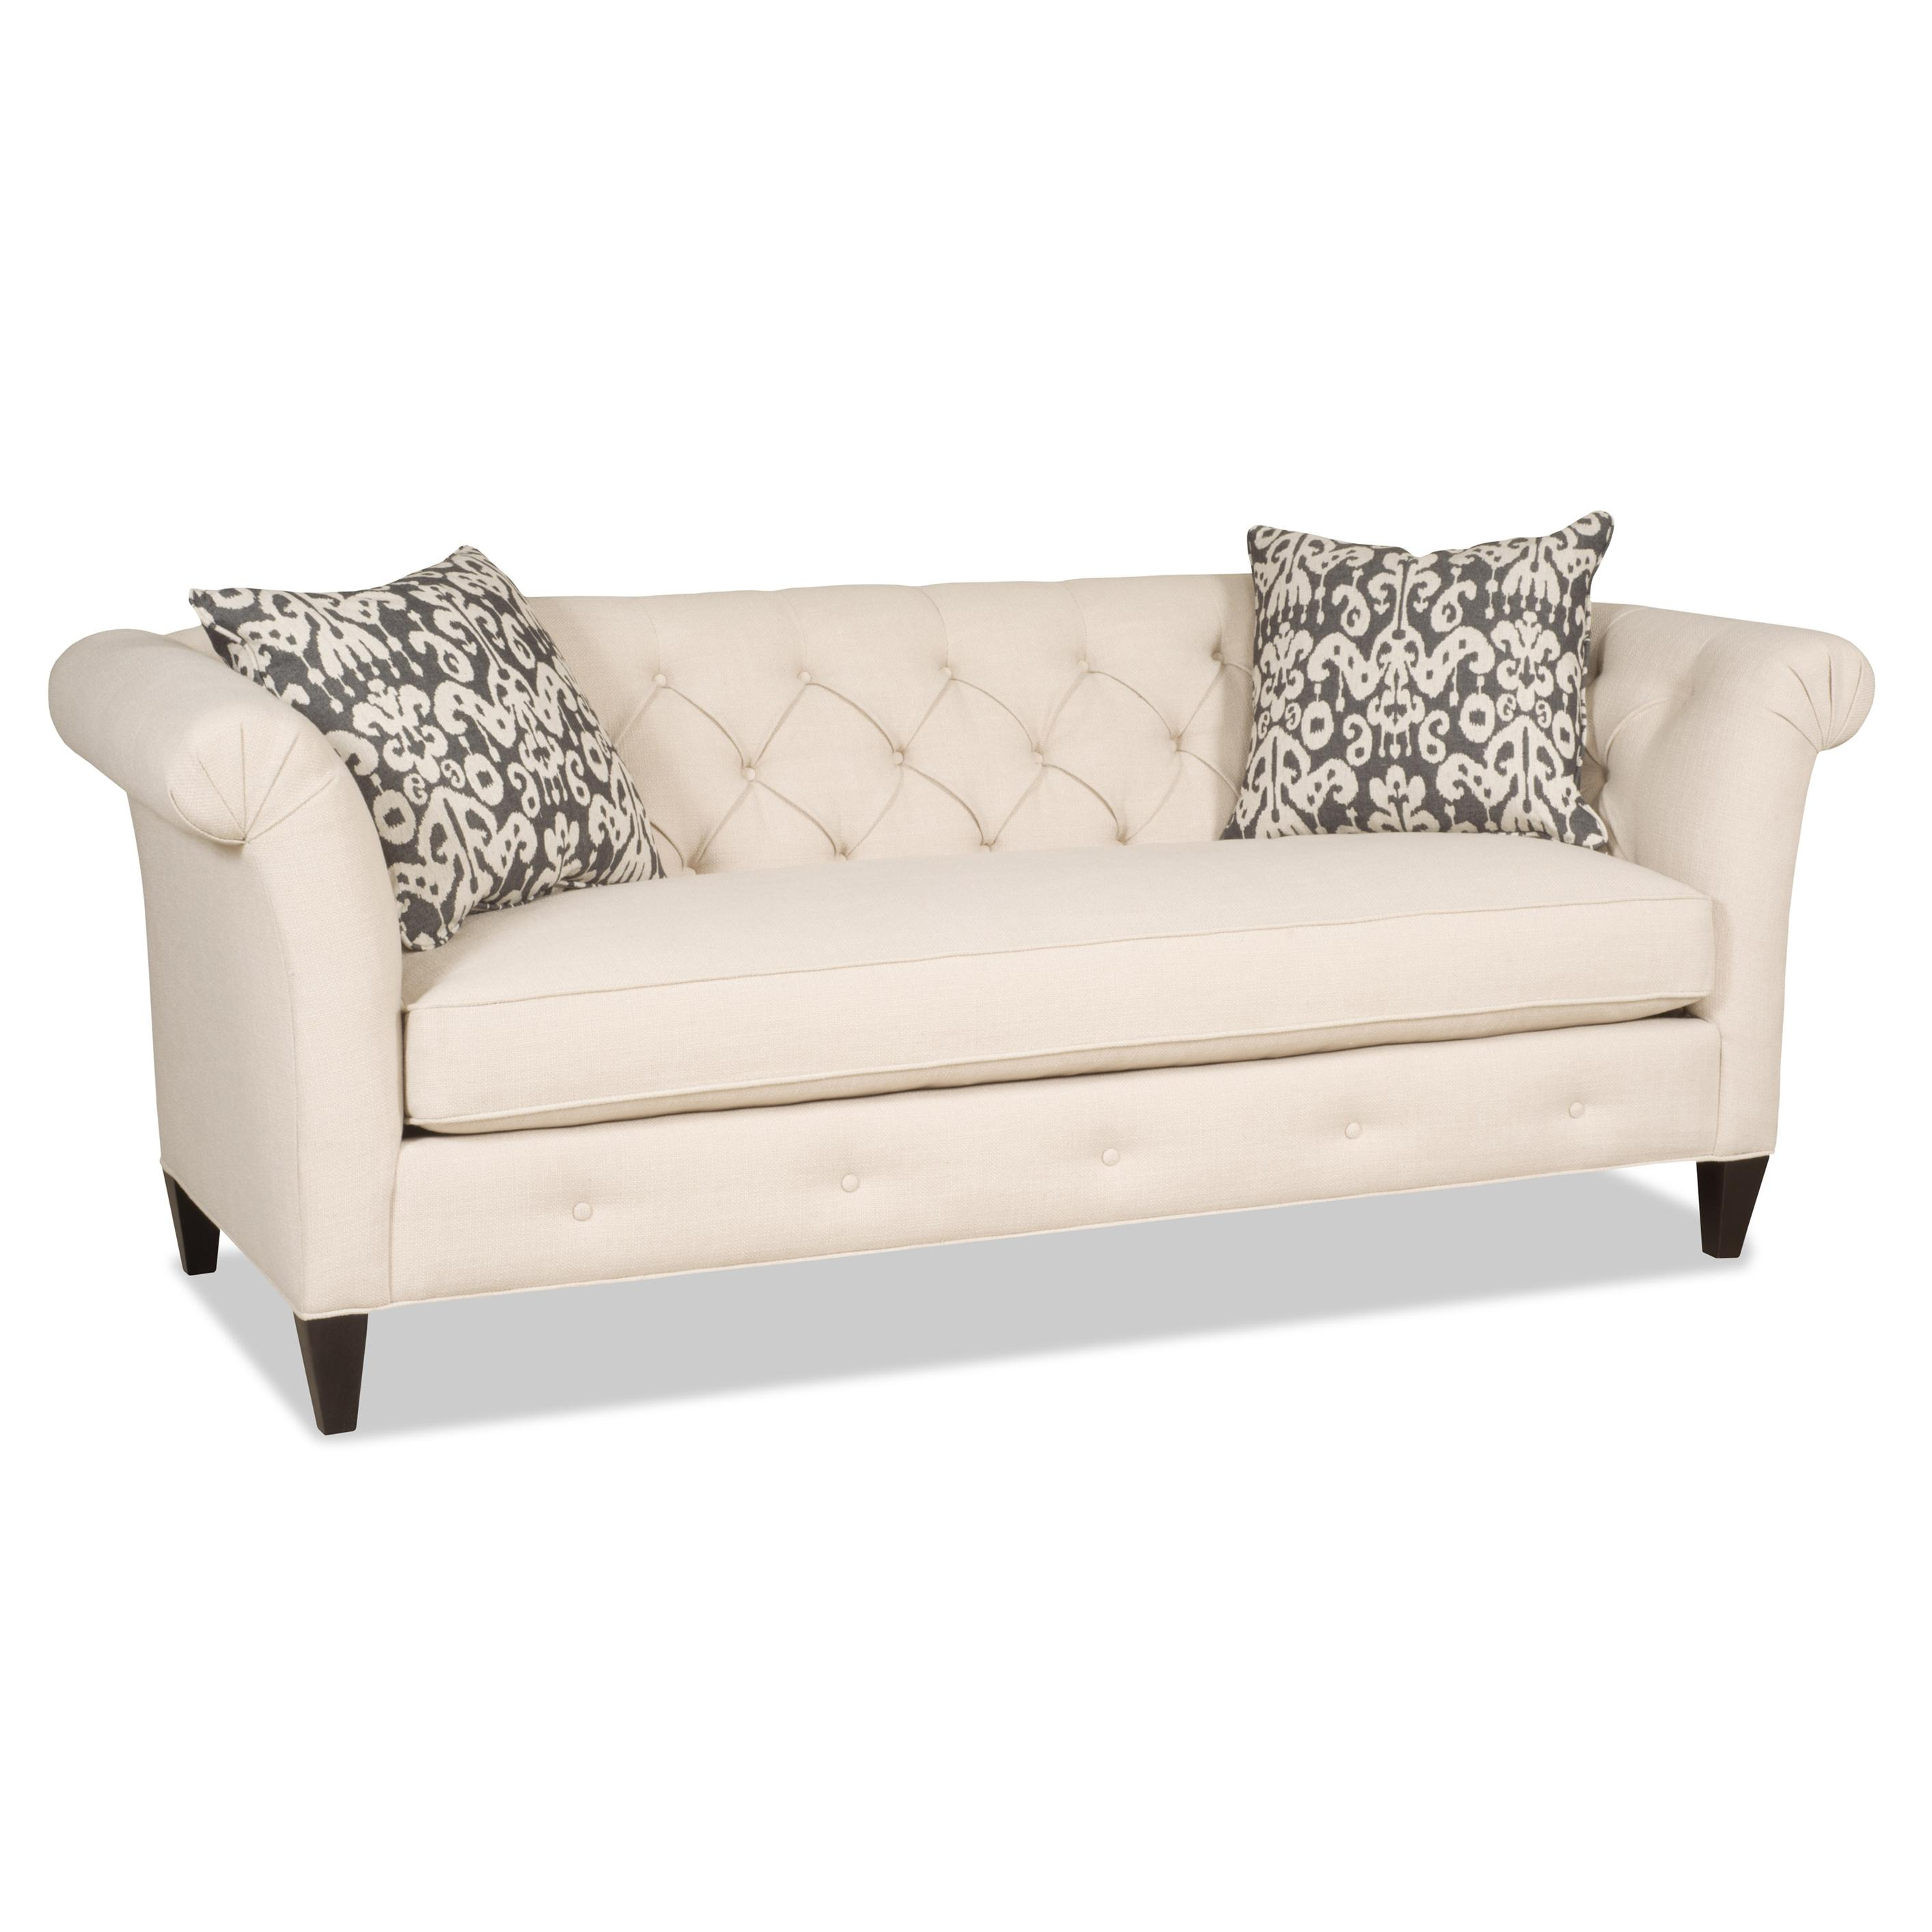 Astrid Traditional Bench Sofa with Tufted Back by Sam